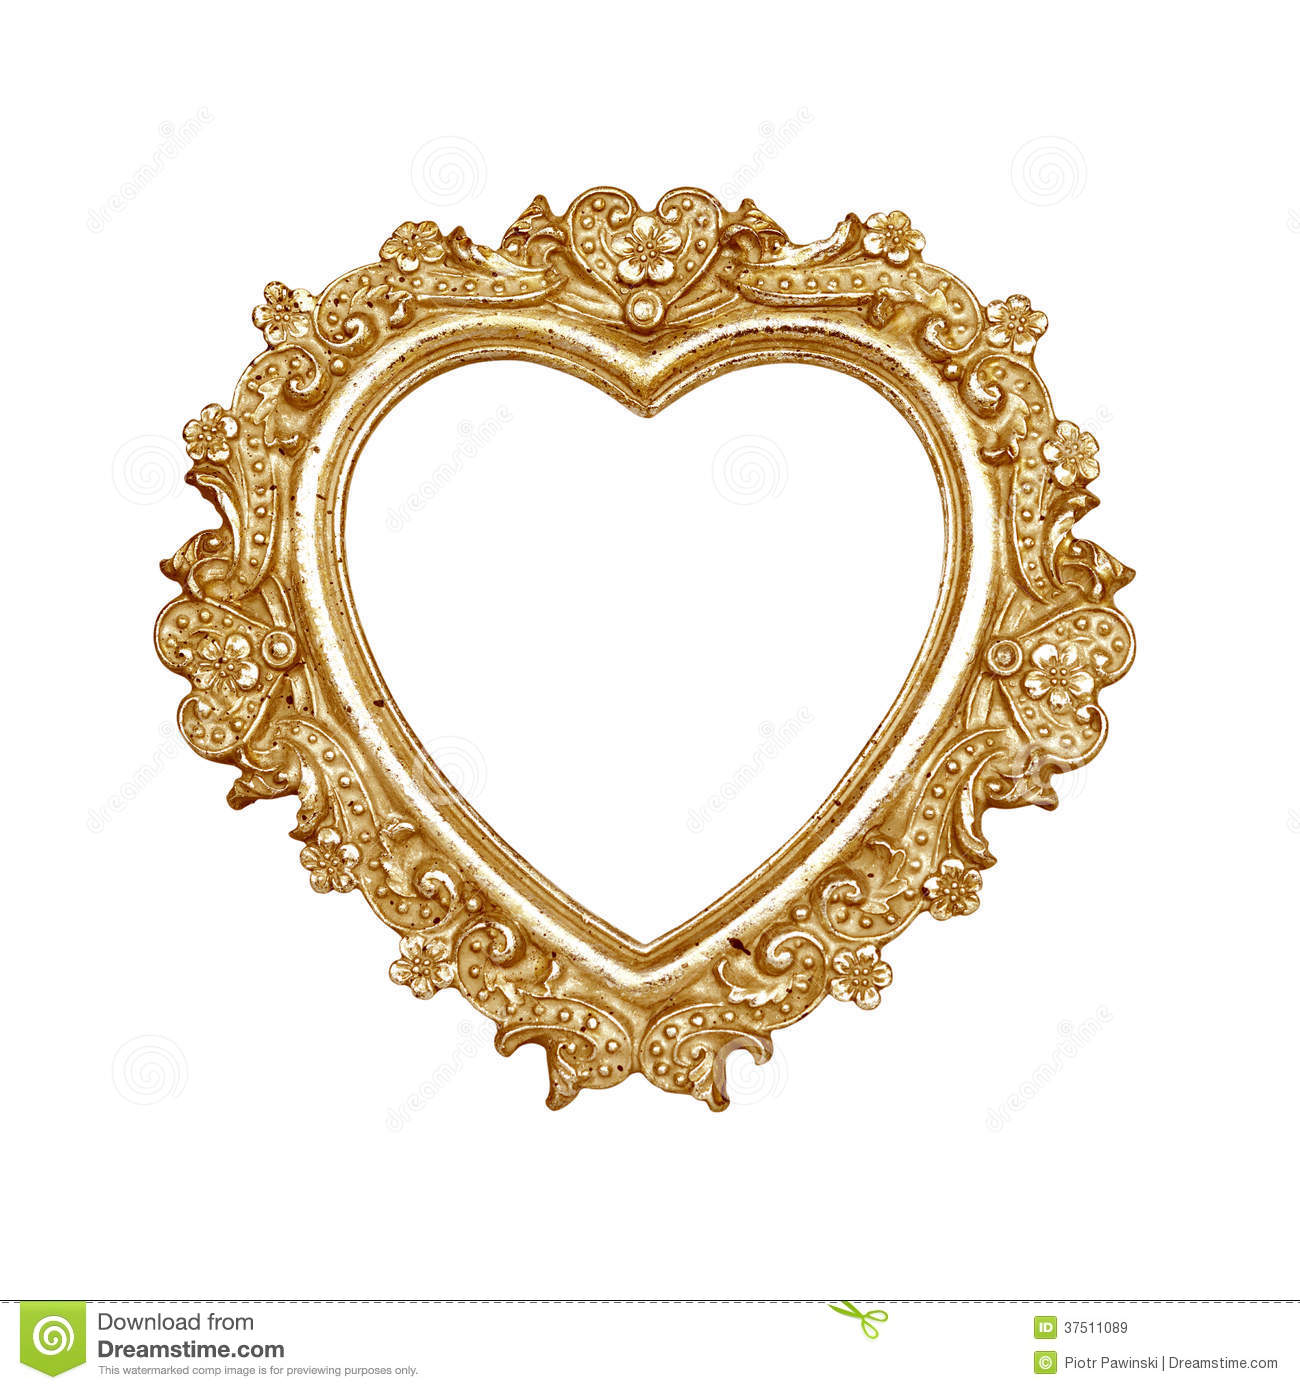 Old gold heart picture frame